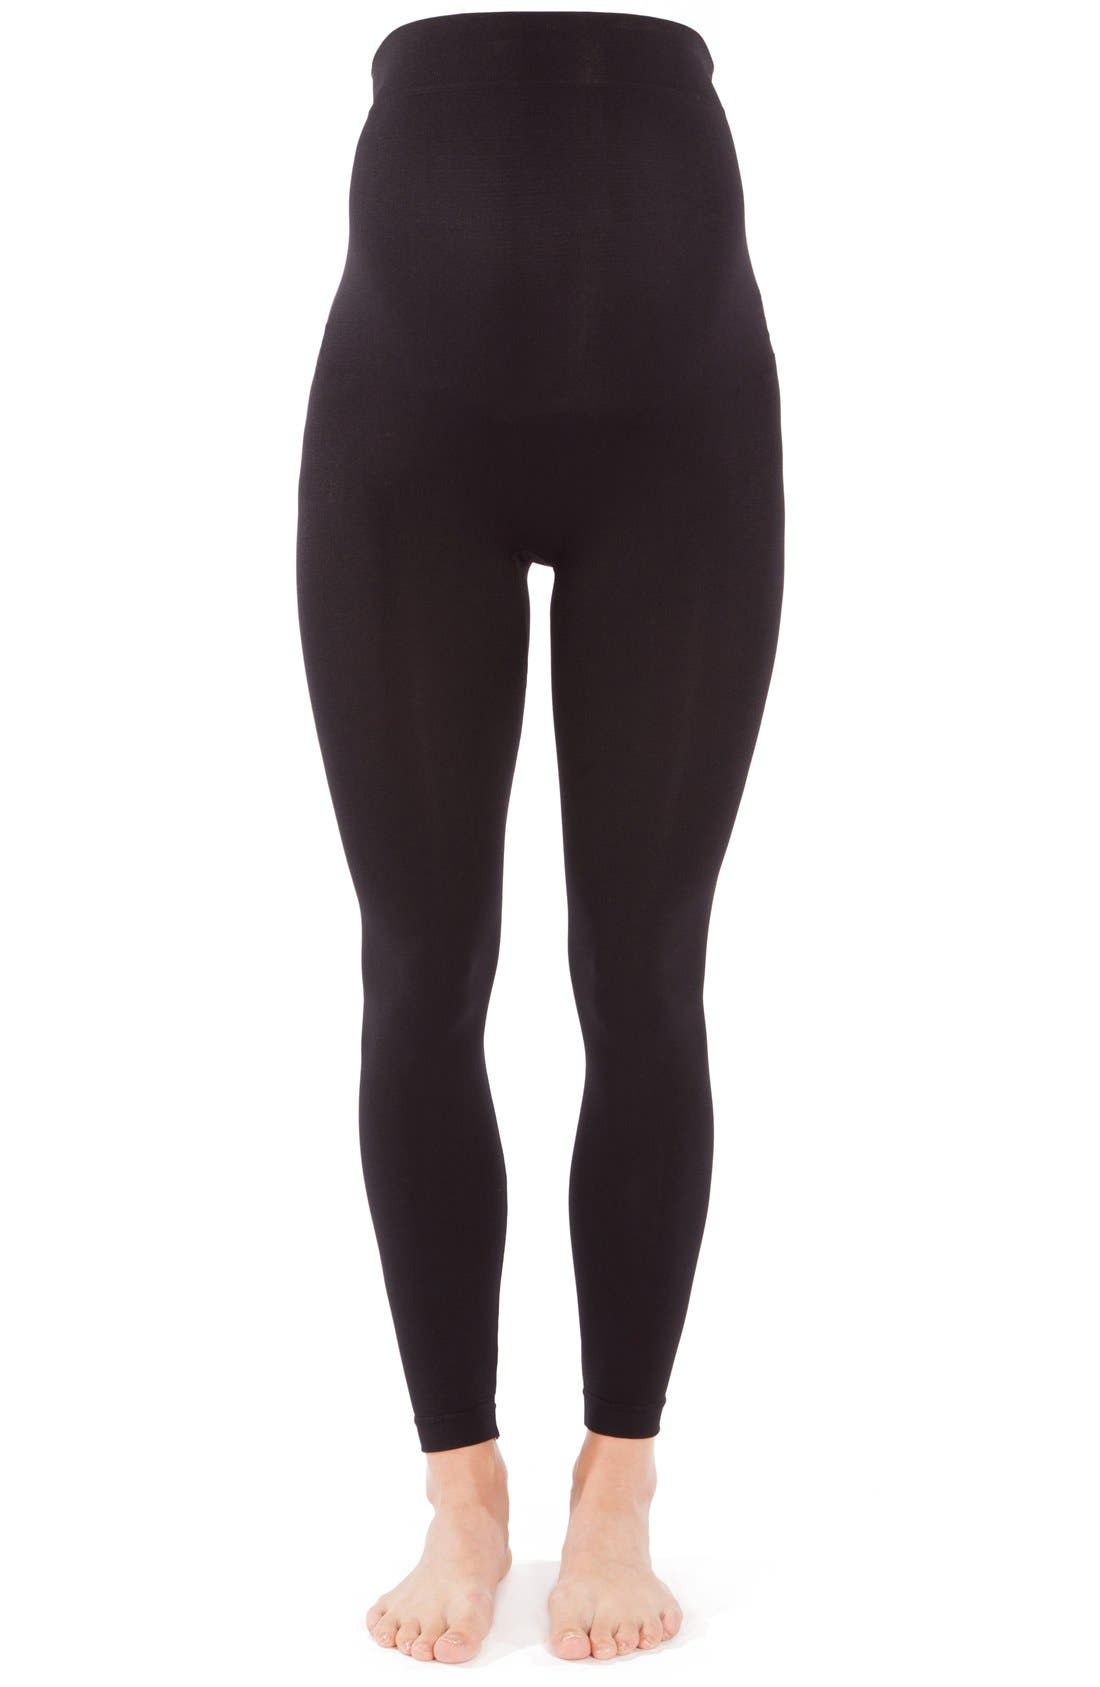 Modern Eternity 2-Pack Seamless Maternity Leggings